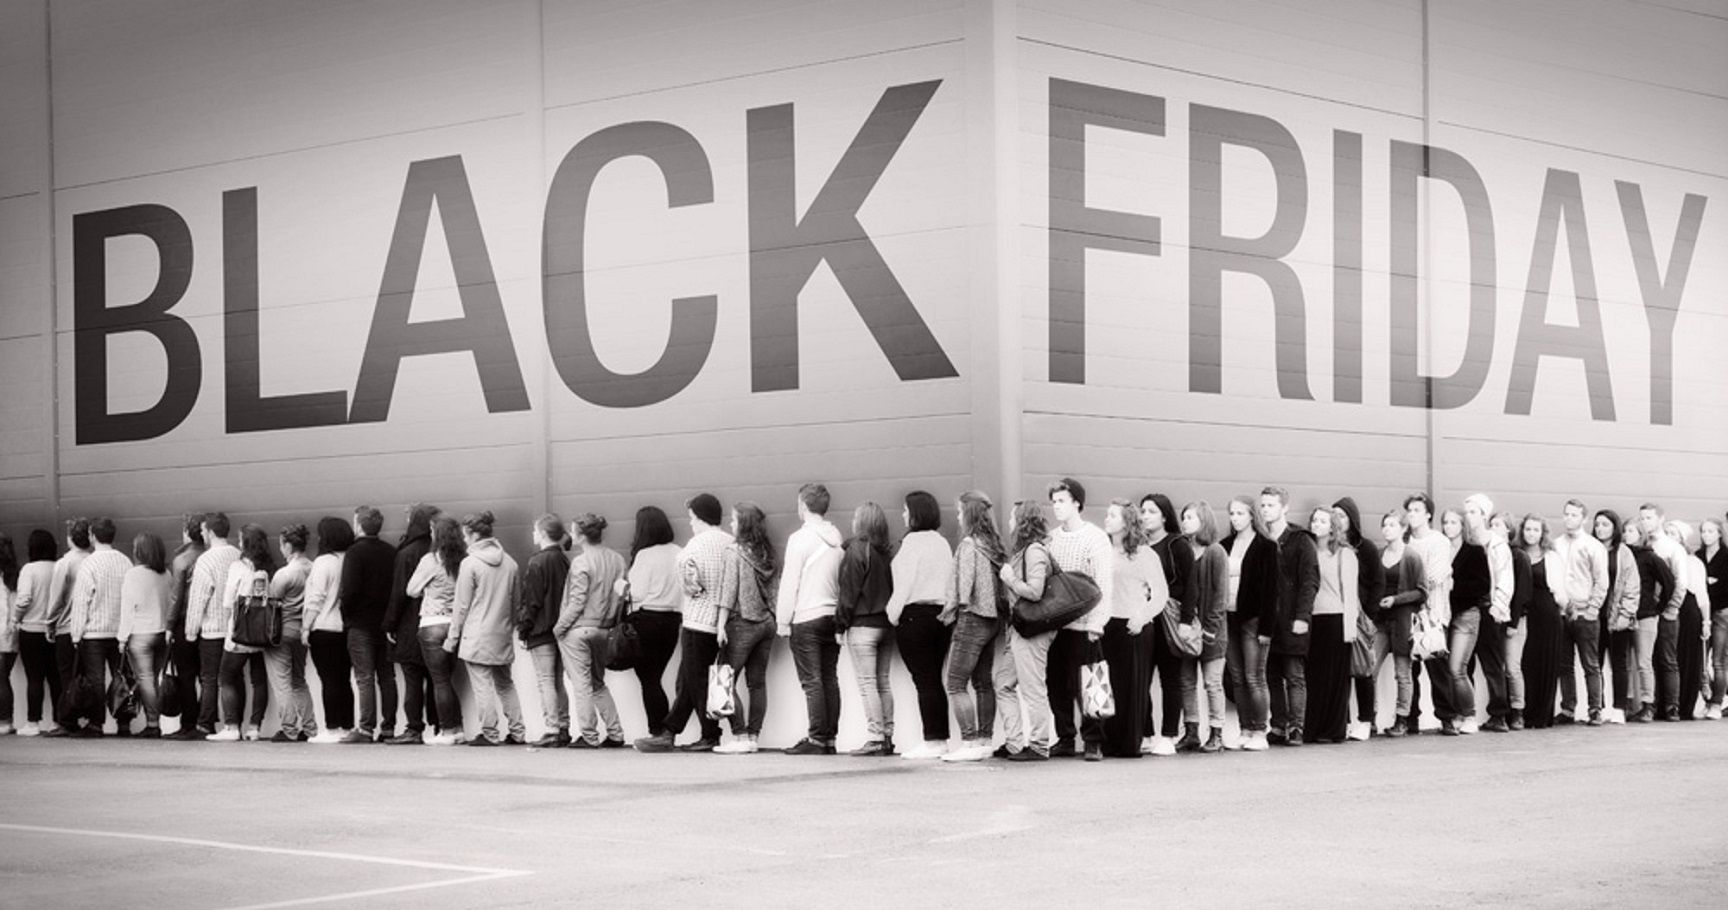 Top 10 Black Friday Scams You Must Avoid